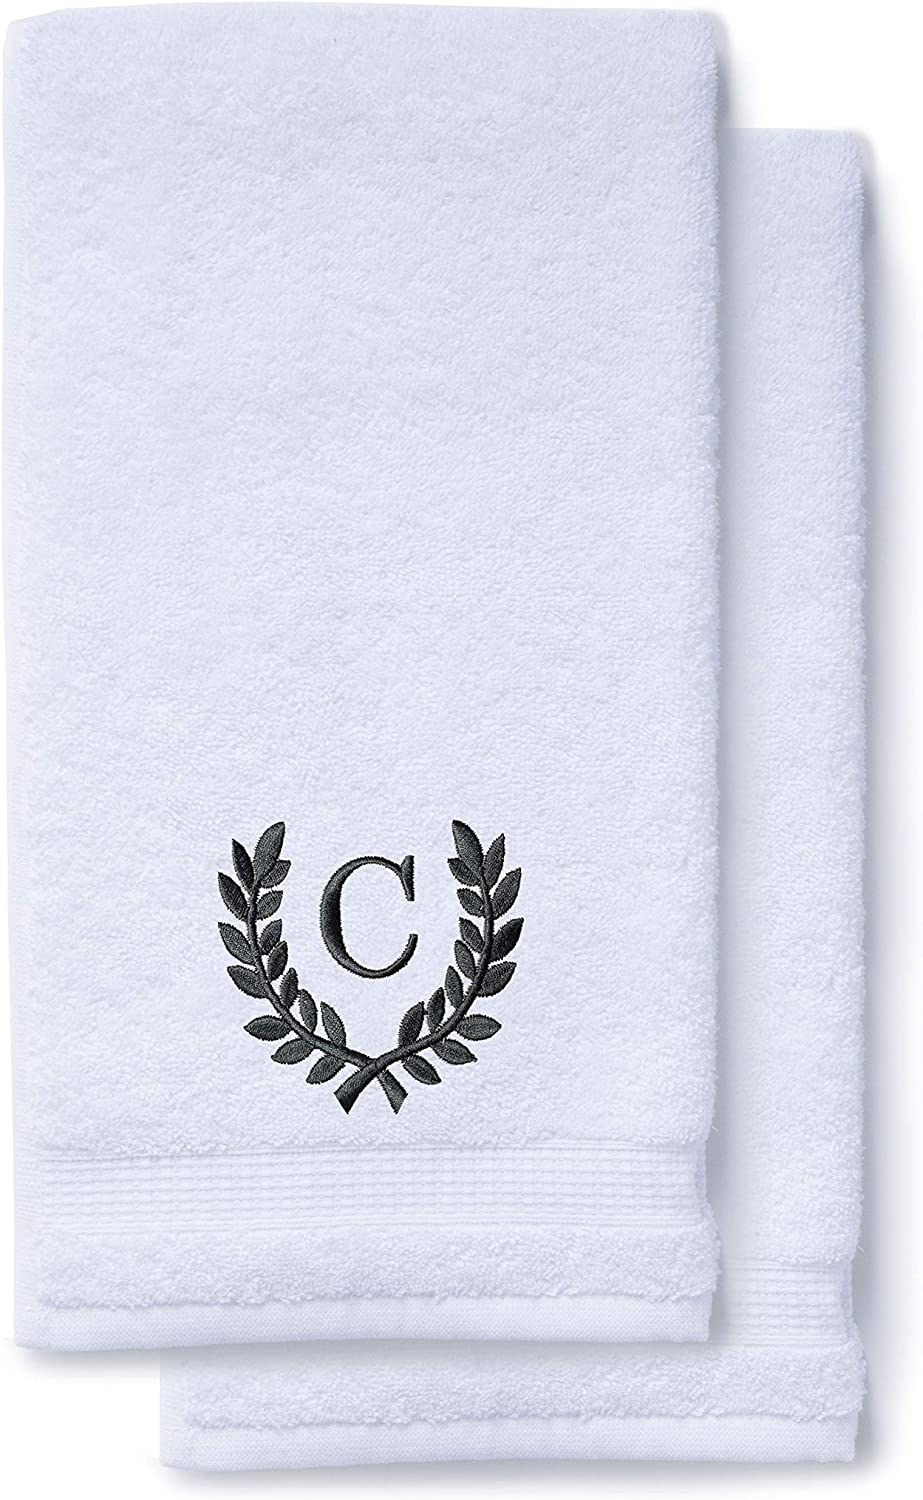 Image of Turquaz hand towel in white color with embroidered letter C.